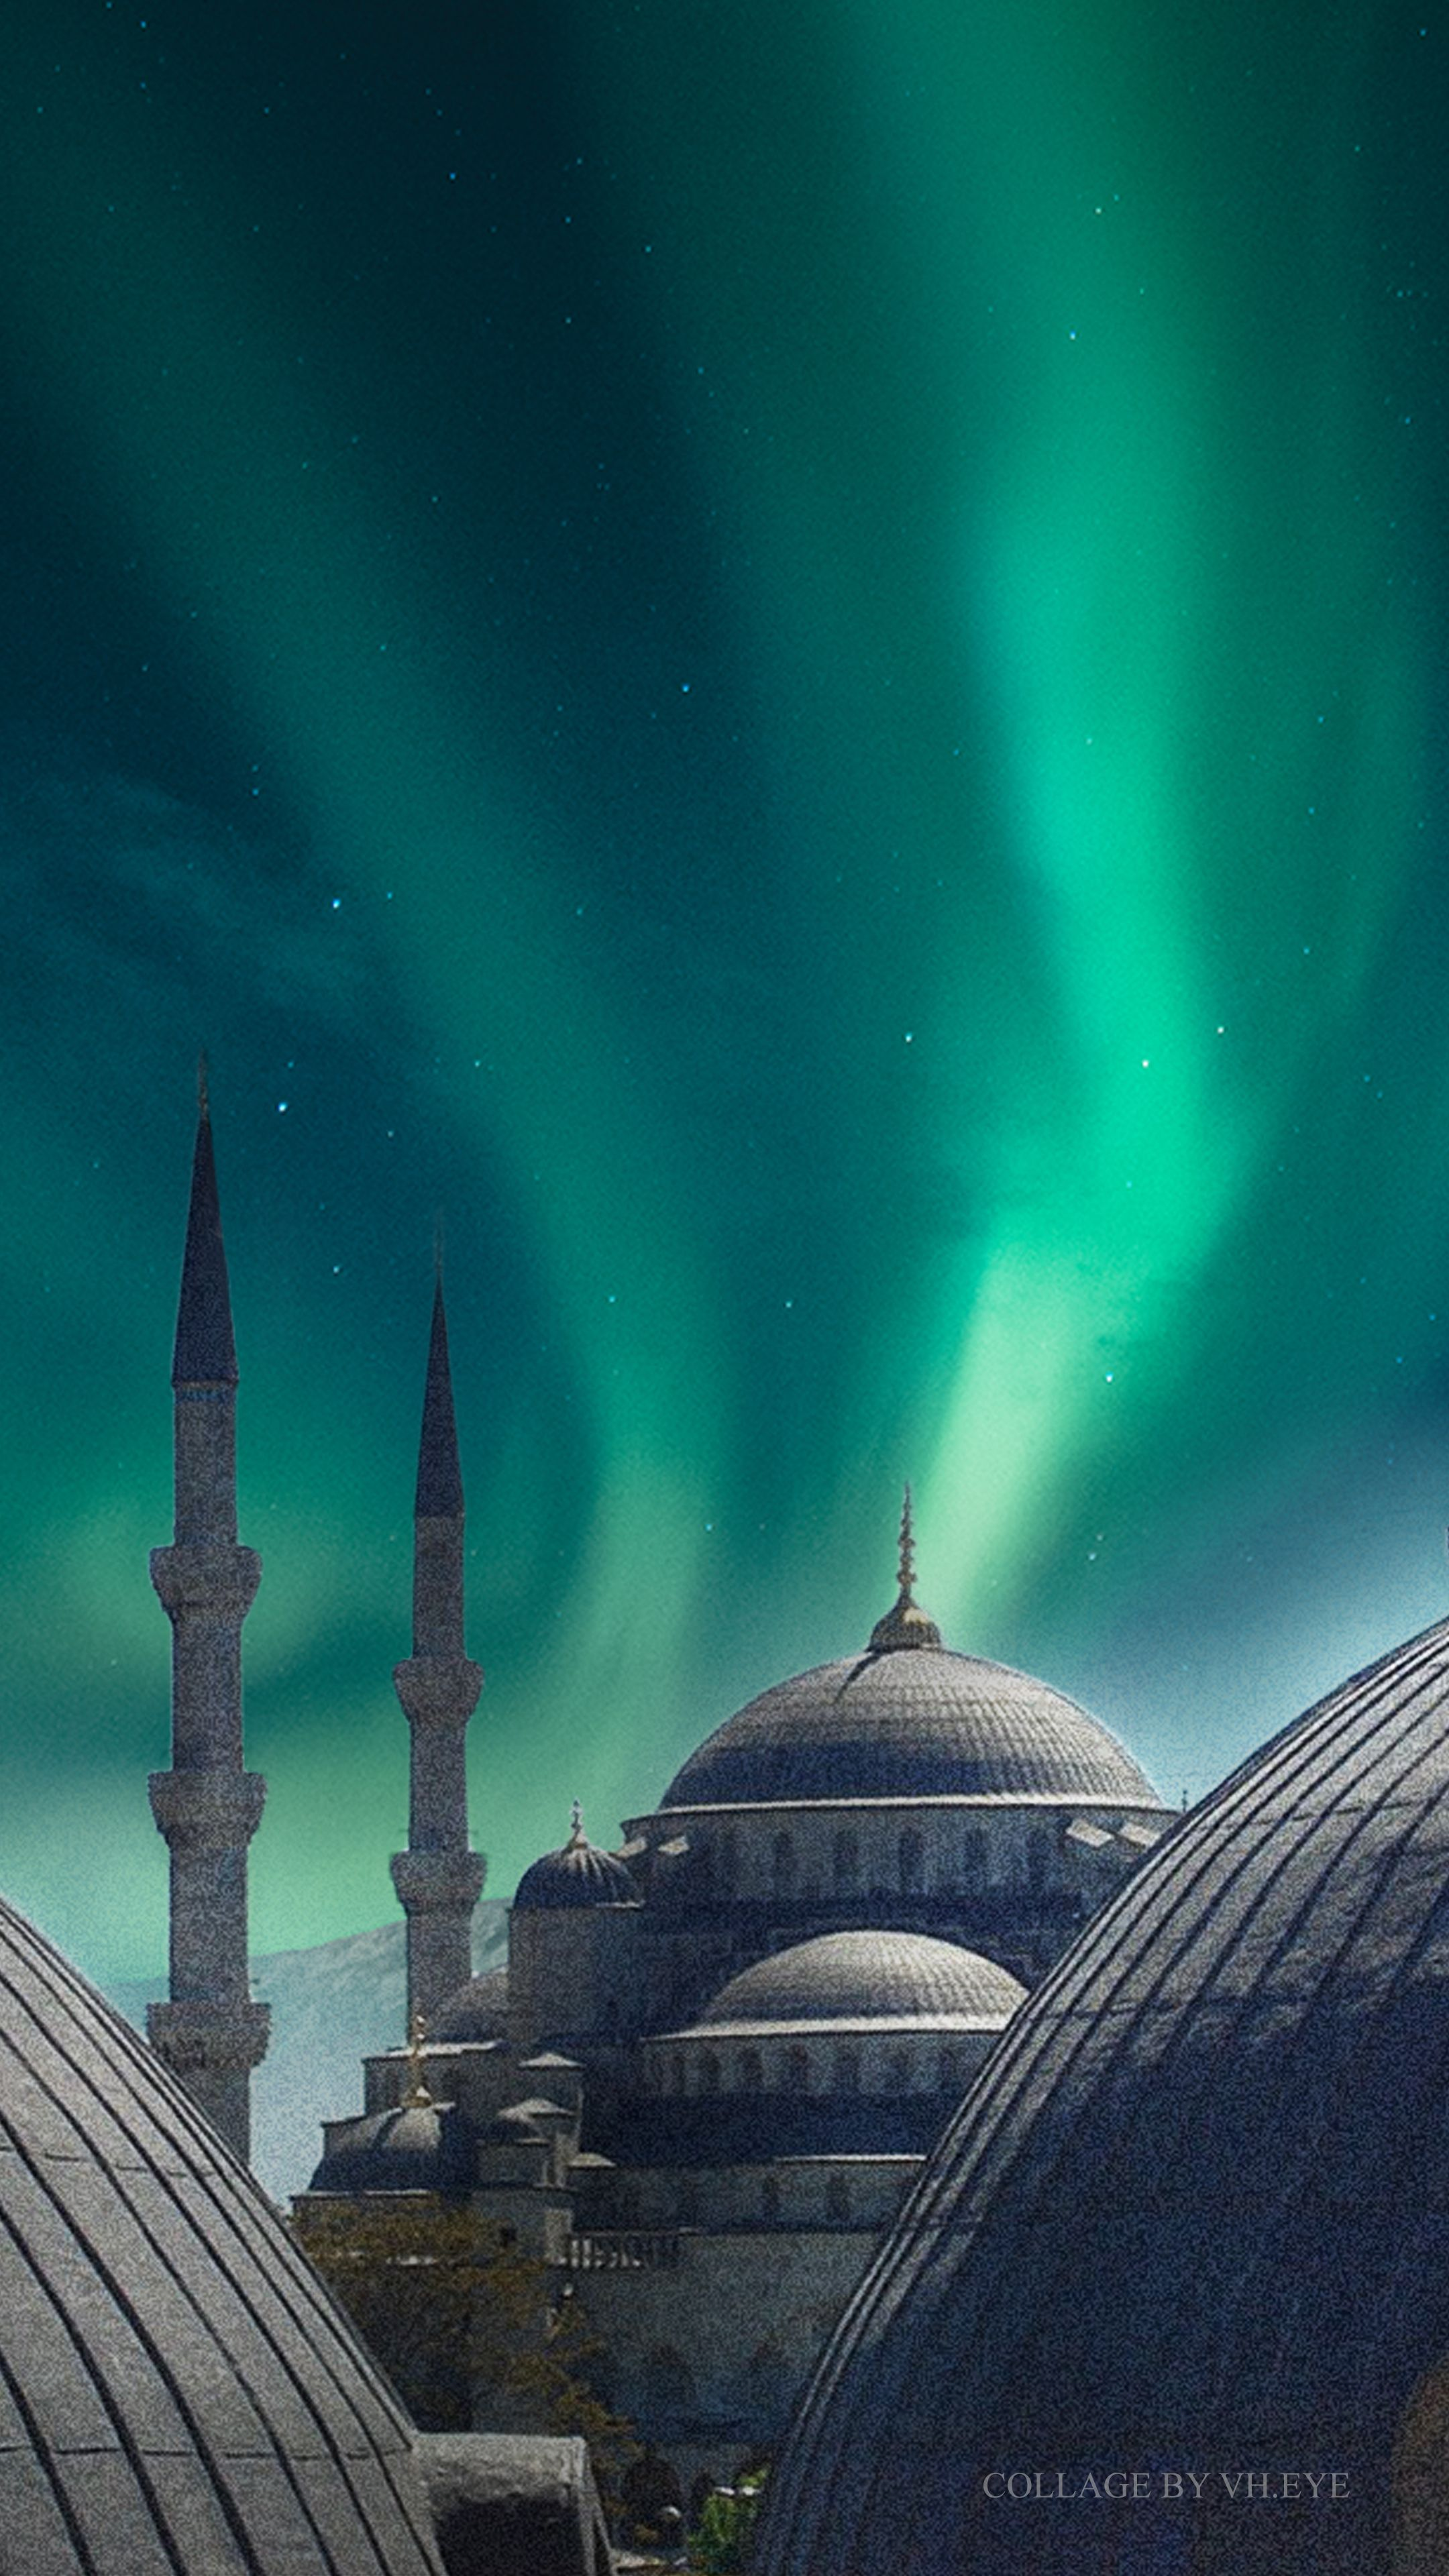 Sultan Ahmed Mosque Turkey Blue Mosque Wallpaper Iphone